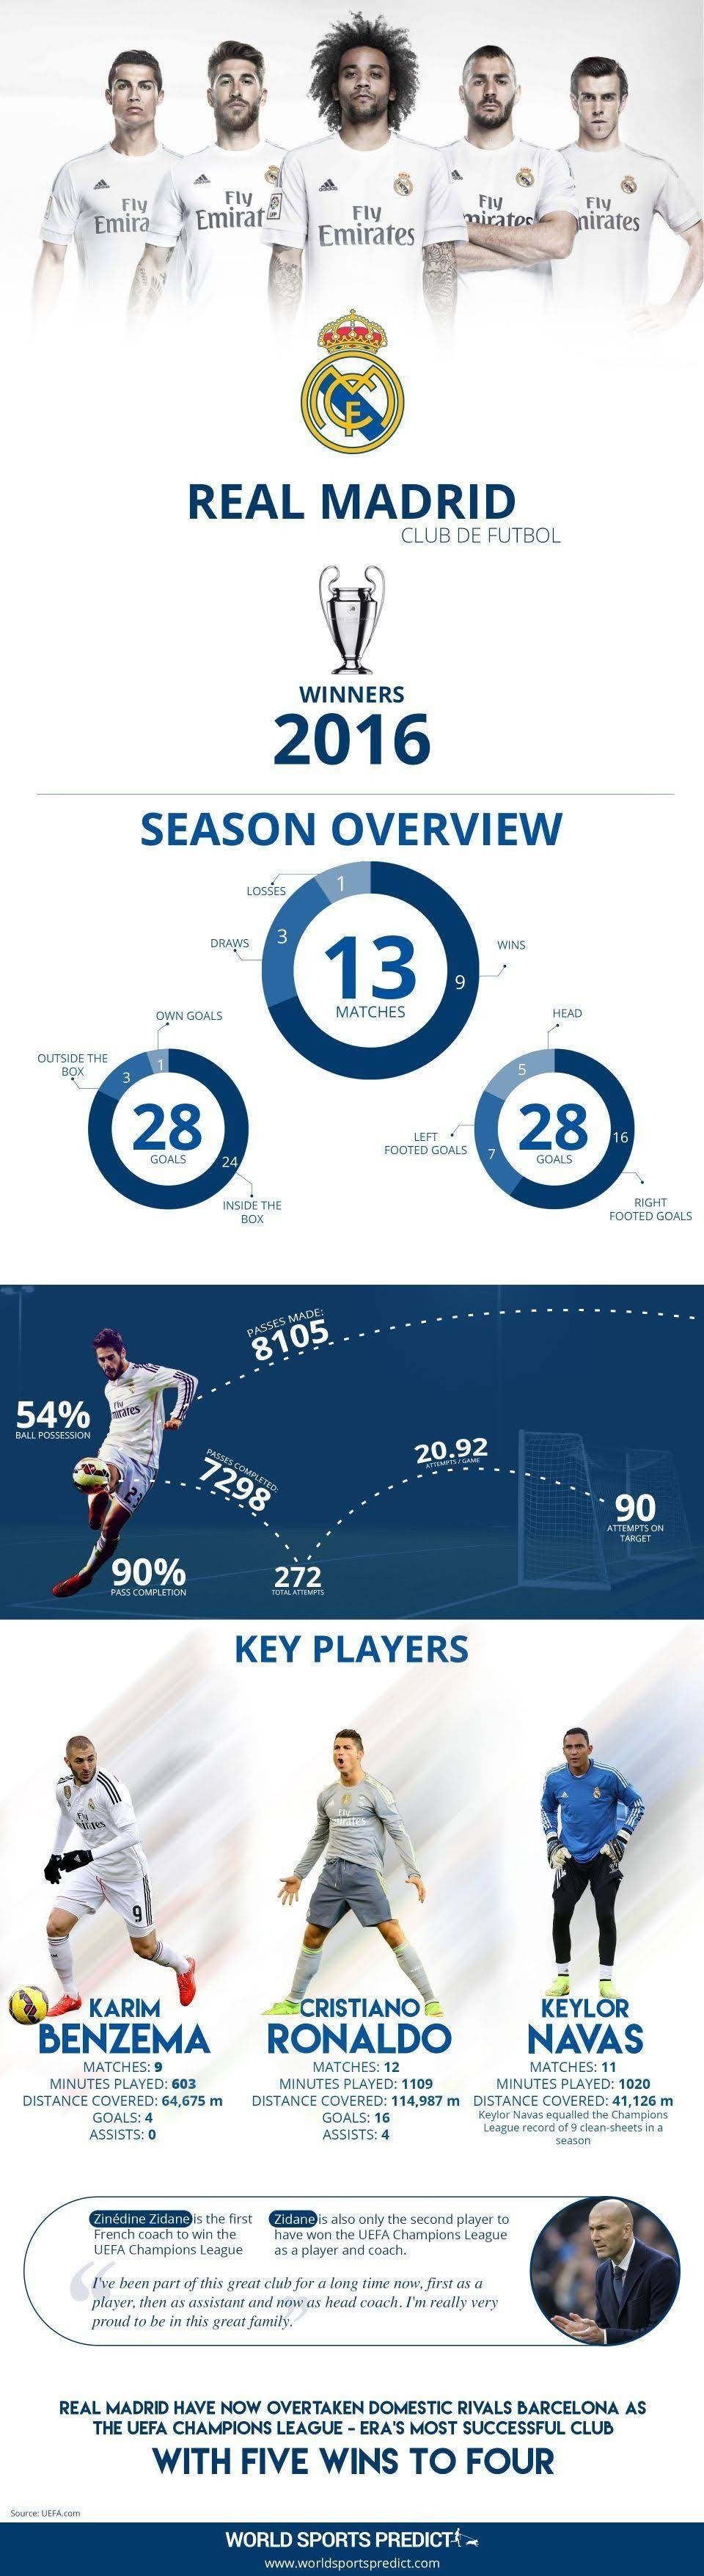 Real Madrid's Winner 2016 Season Overview #infographic